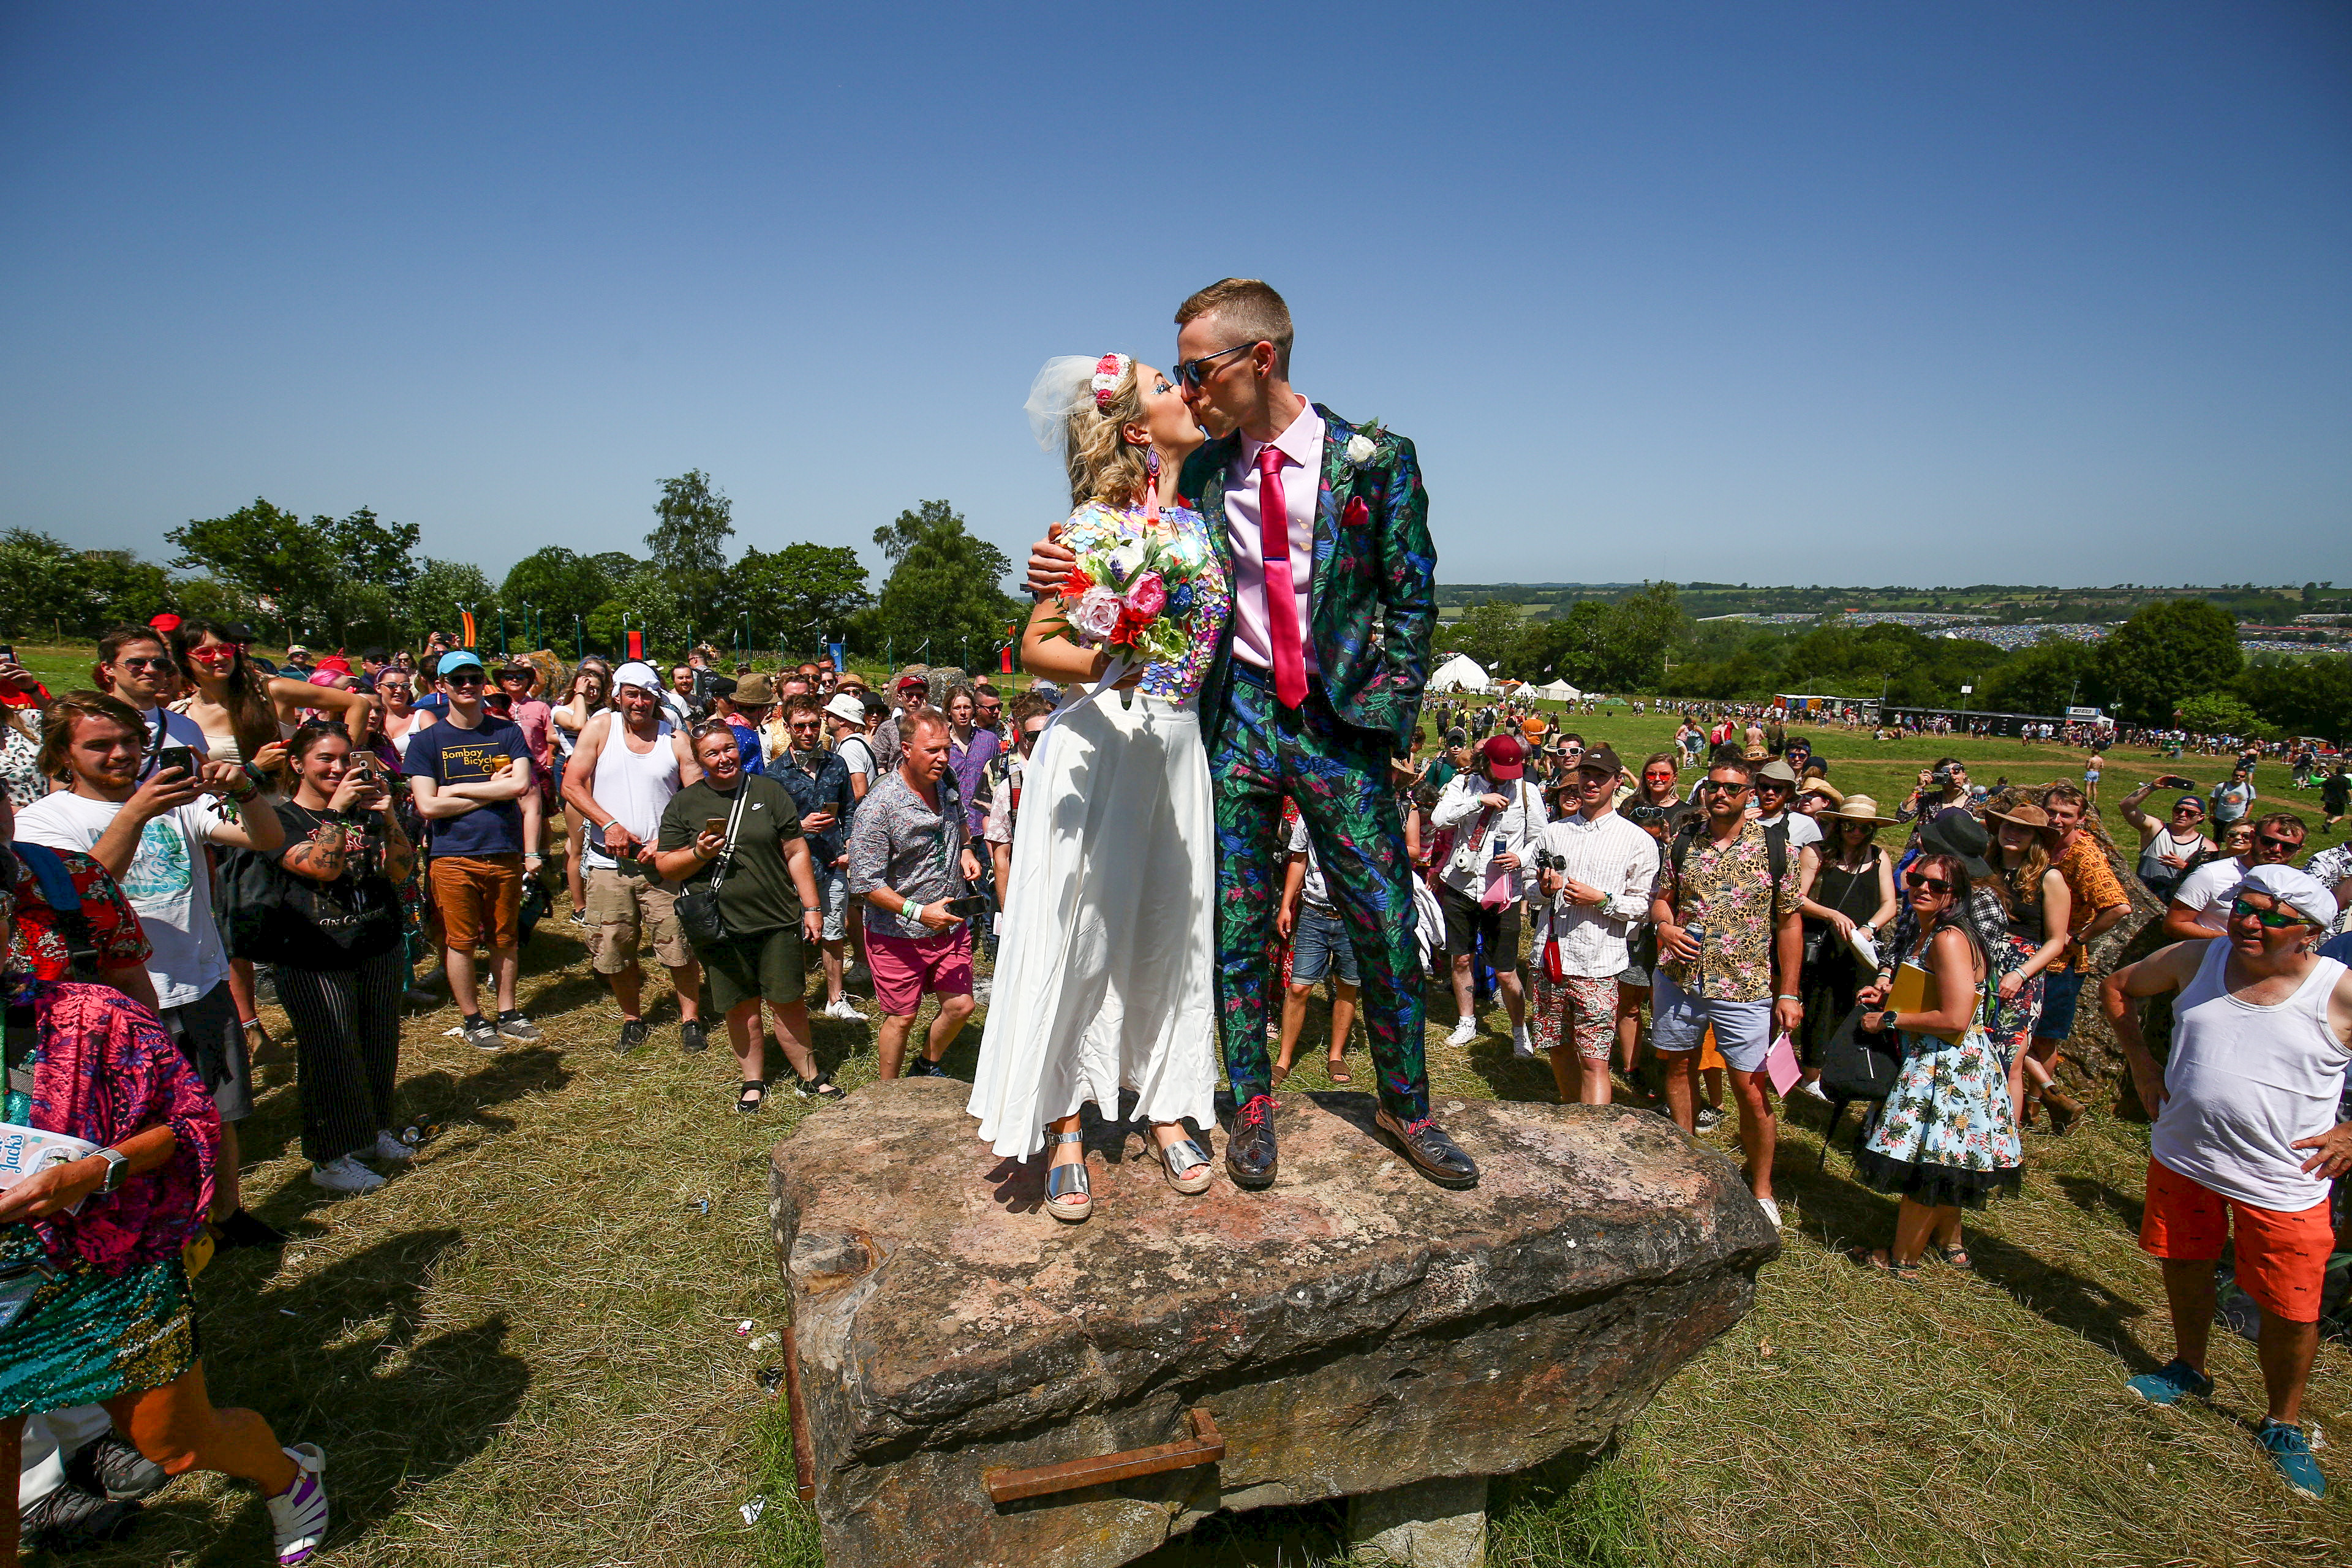 Sarah and Jack married today at Glastonbury. Credit: SWNS